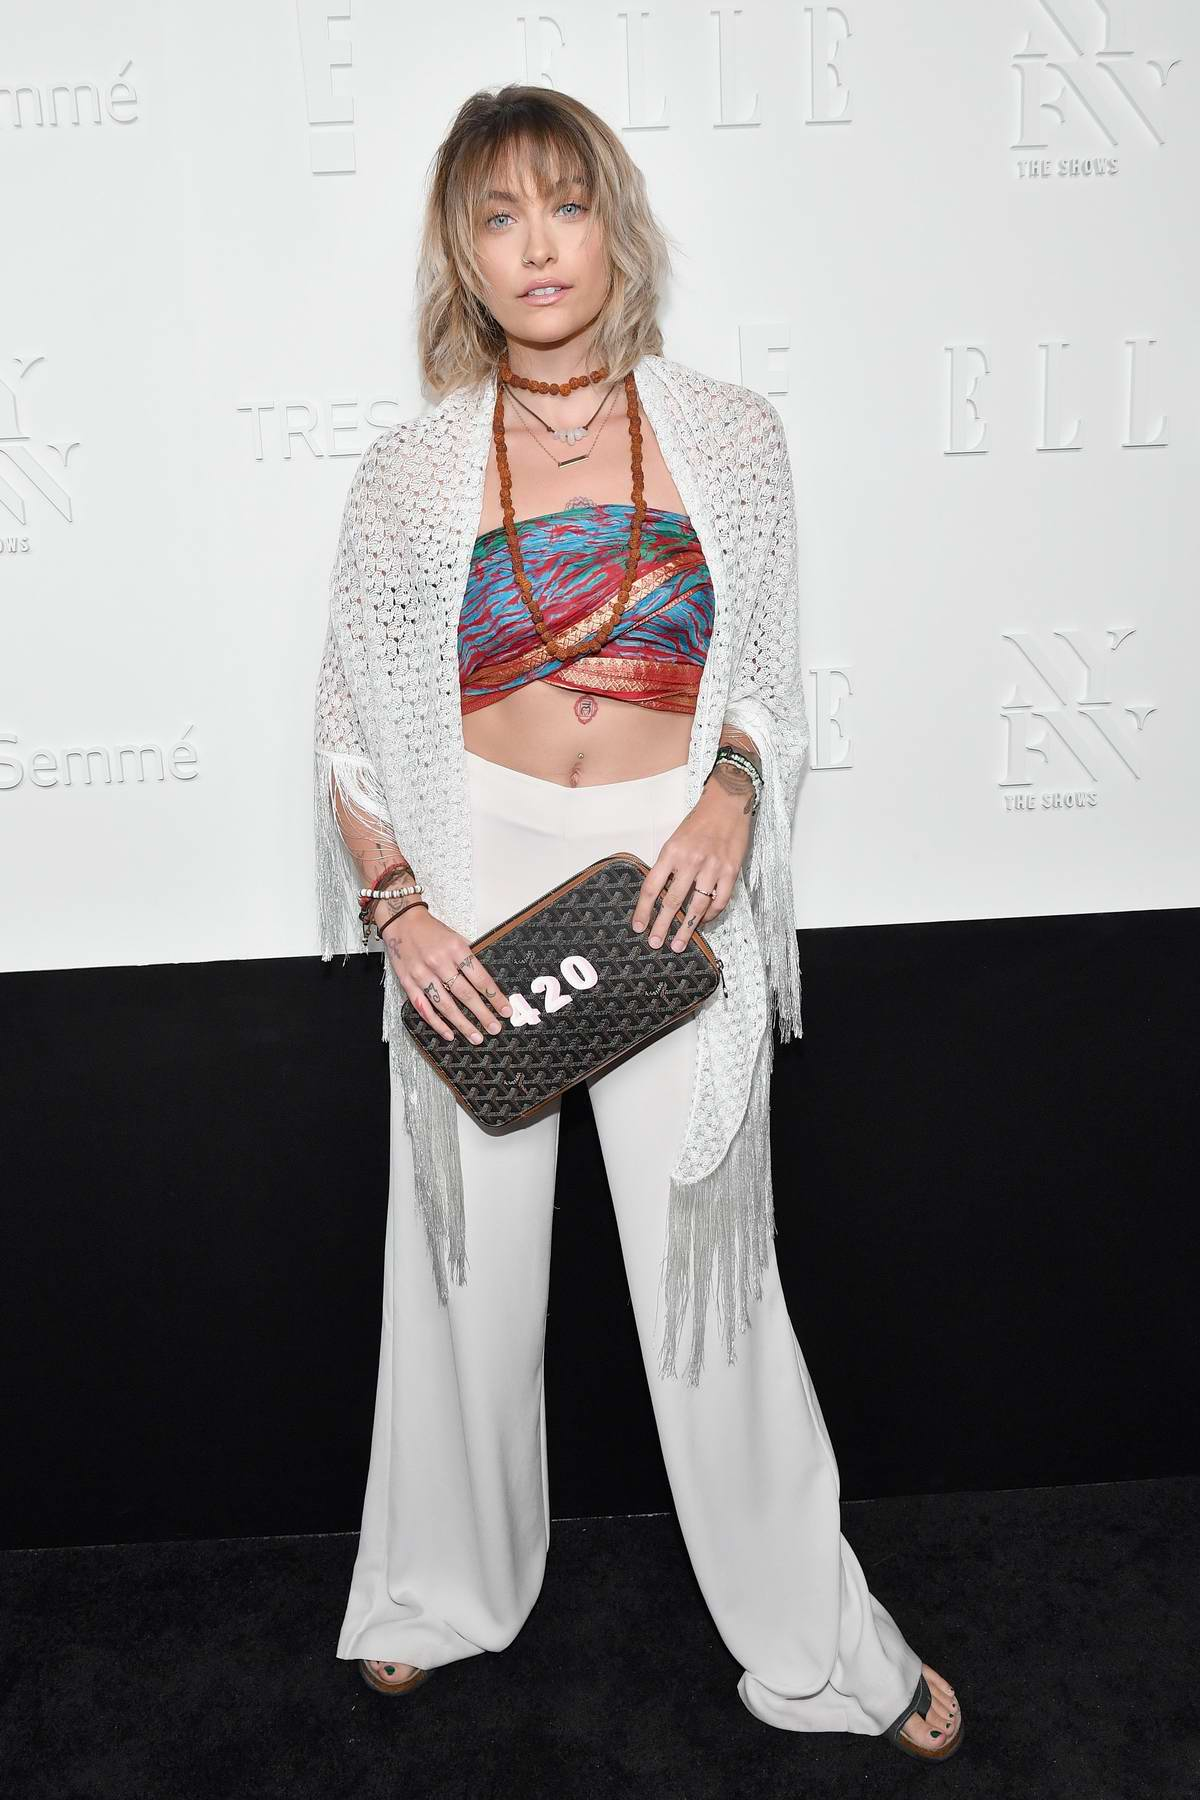 Paris Jackson at Elle IMG party spring summer 2018 at NYFW in New York